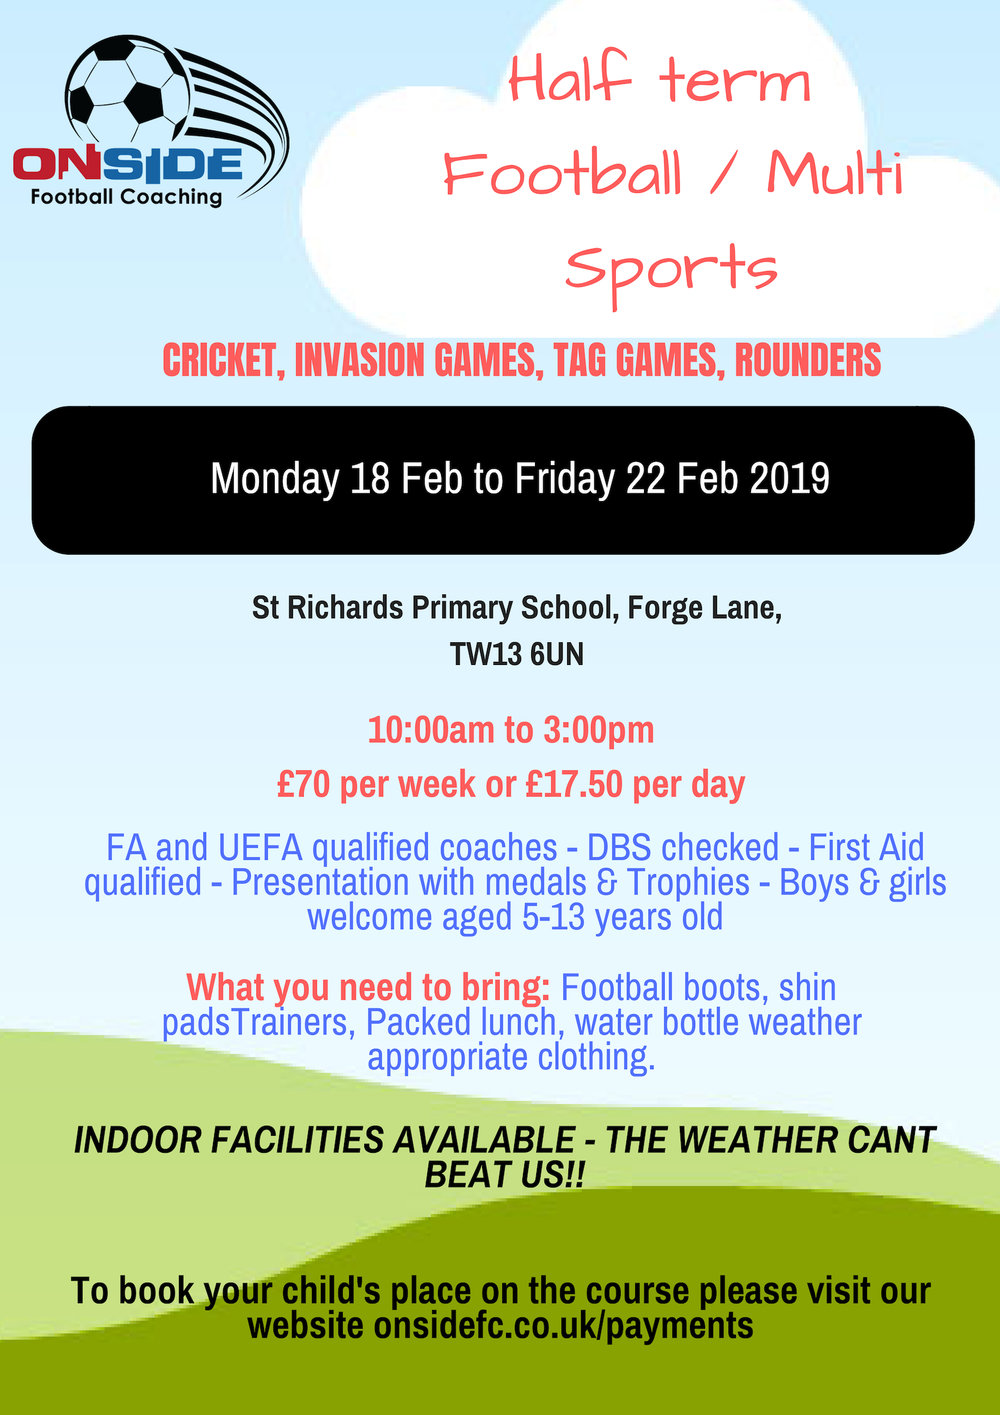 St Richards February 2019 half term flyer.jpg